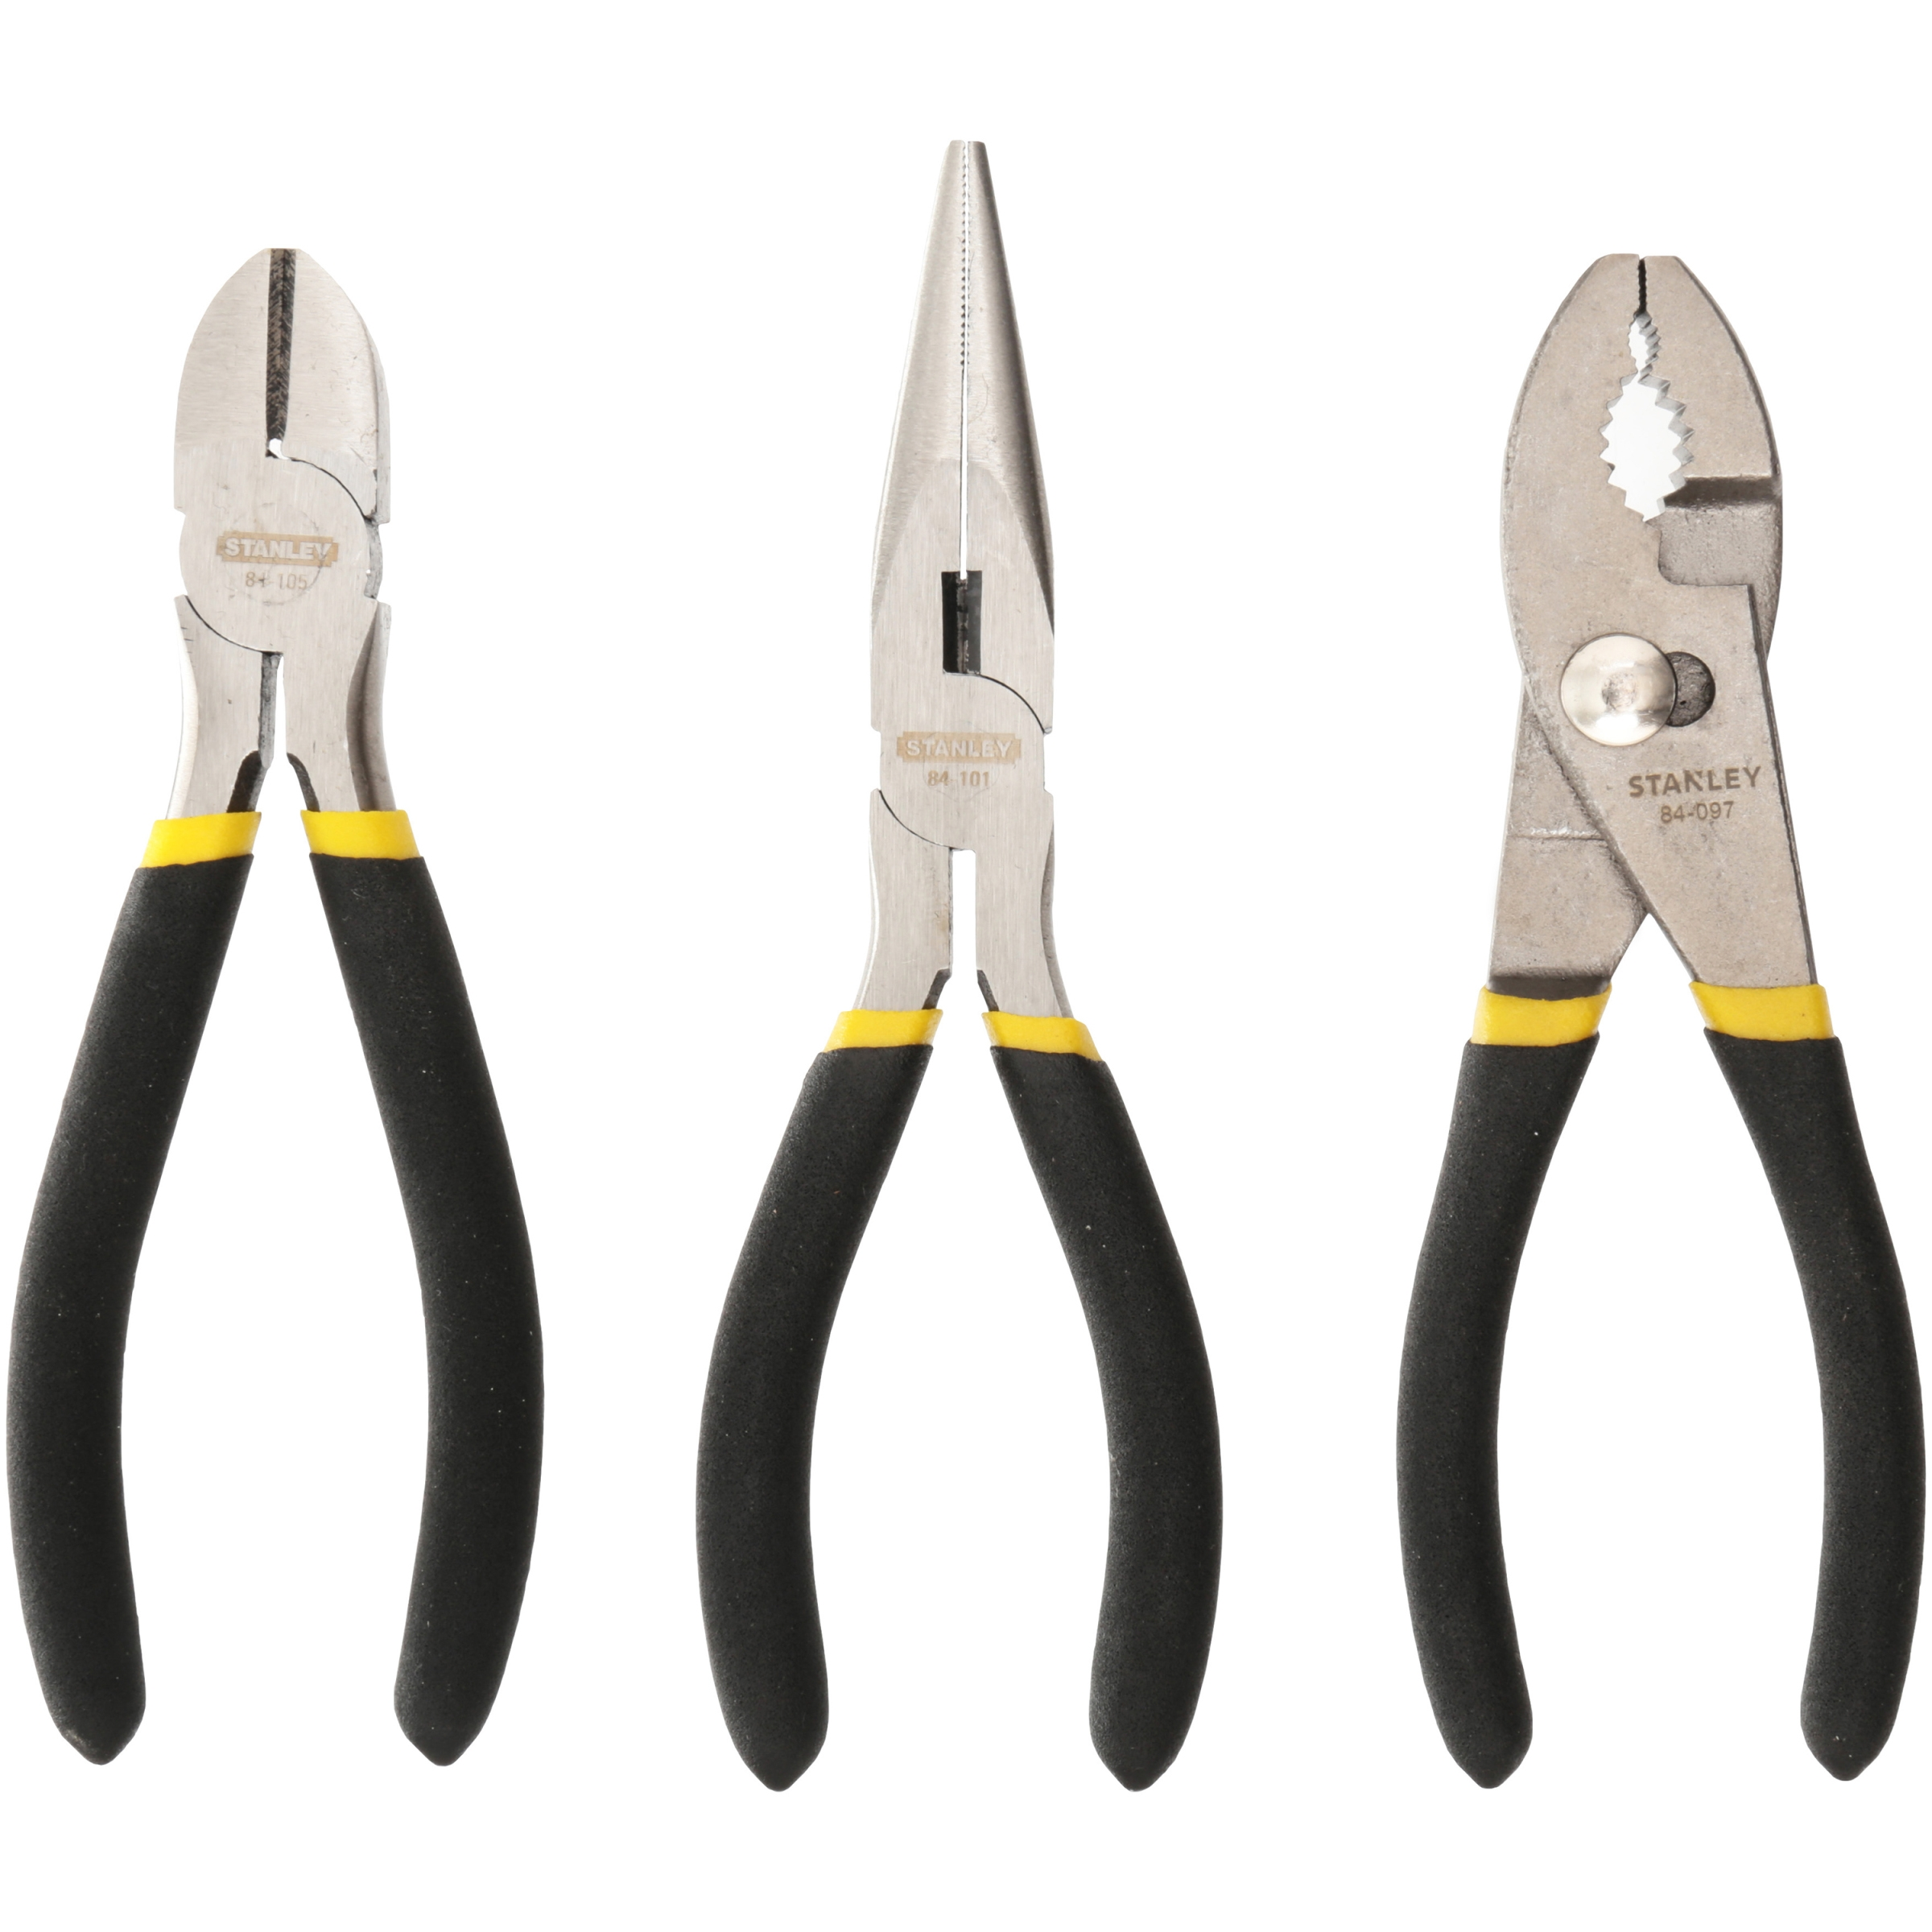 Stanley Pliers Set 3 pc Carded Pack by Stanley Tools